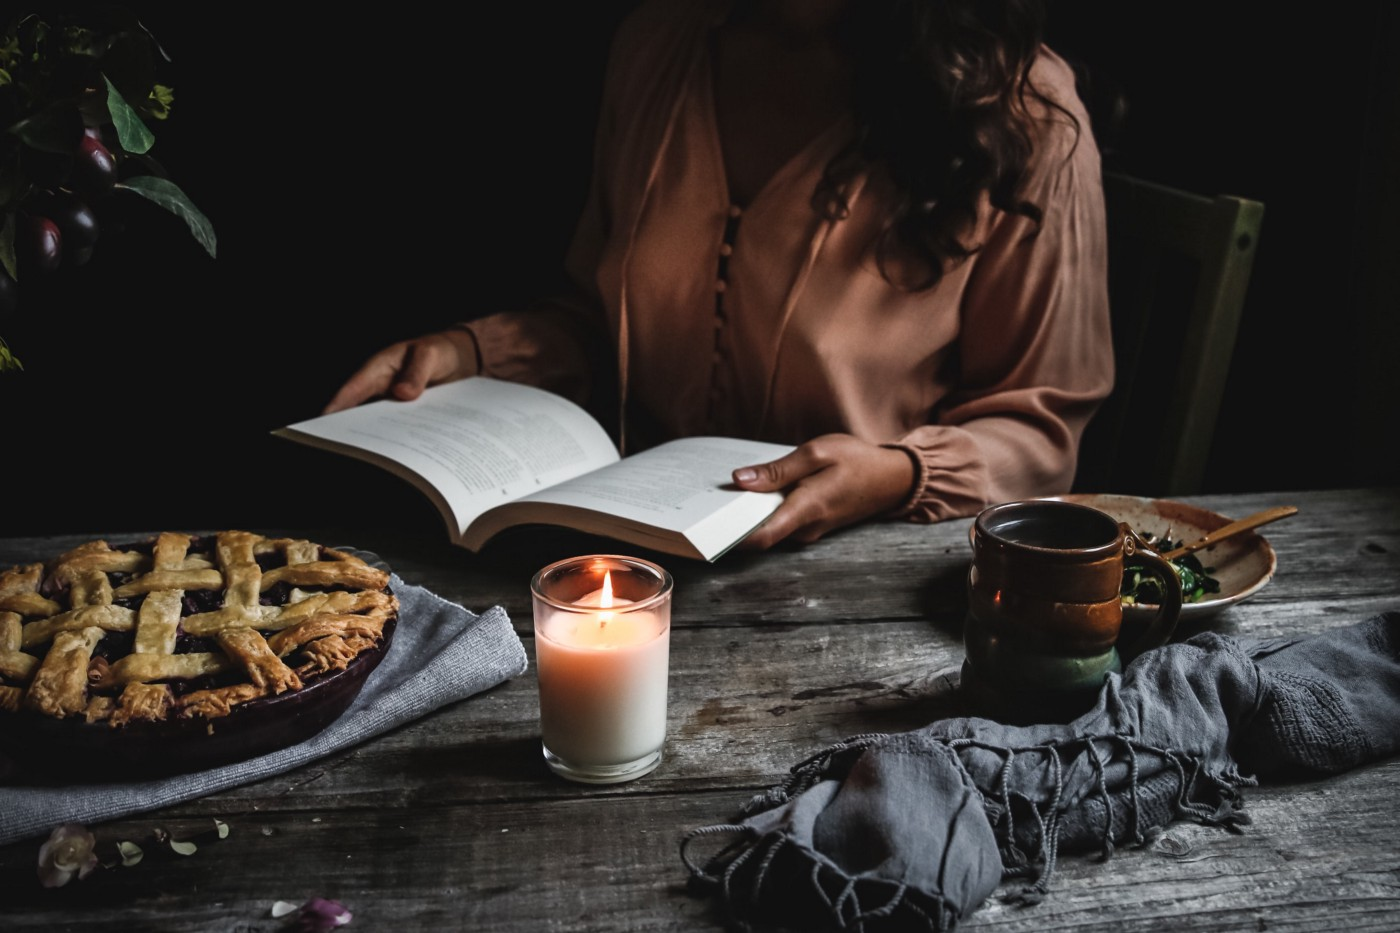 Dark lighting photo of a woman reading a book, with a lit candle and apple pie.